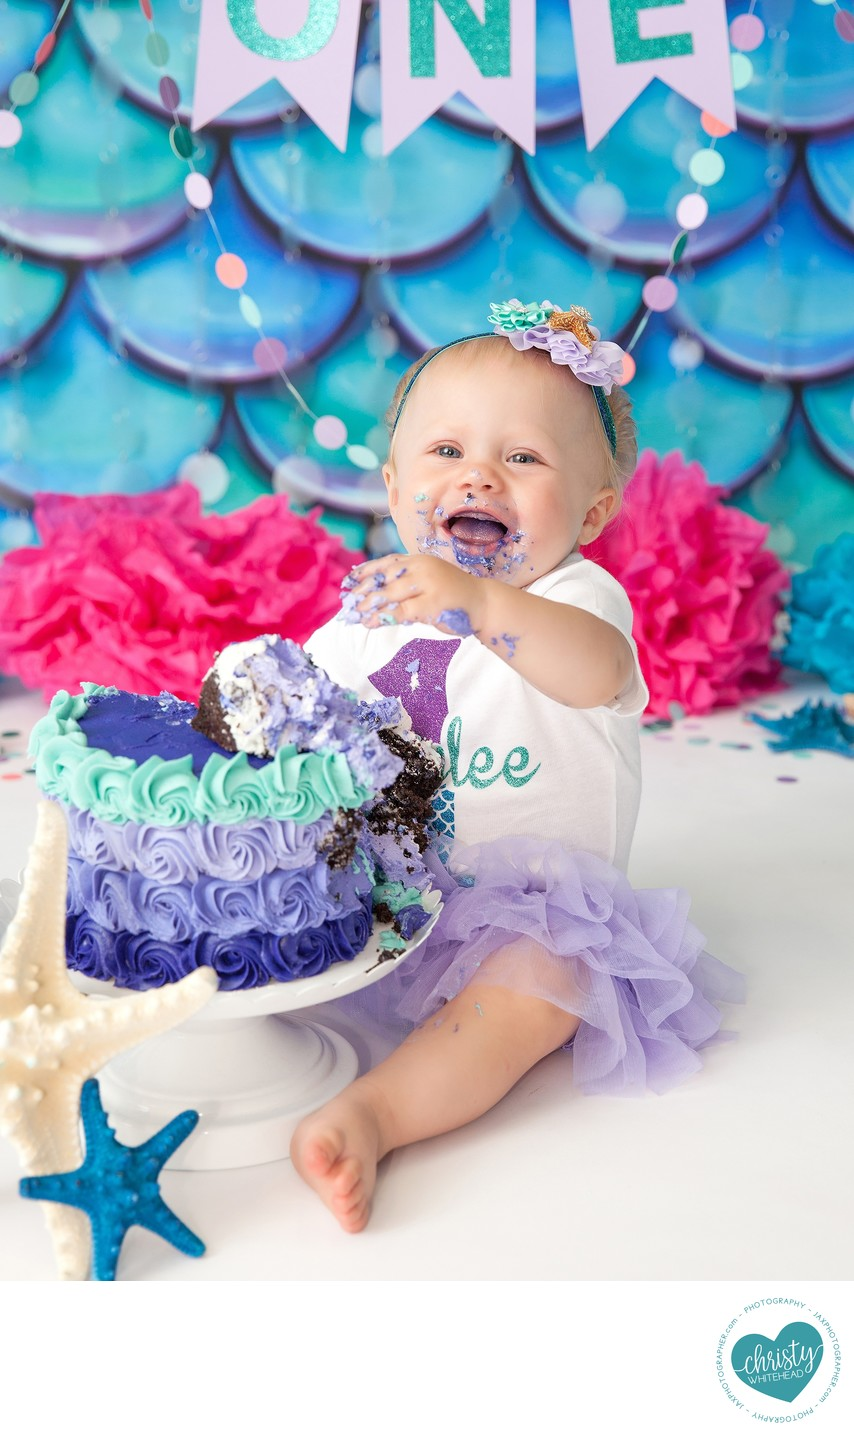 Cutest Little Baby Girl Photo Shoot With A Cake JAX